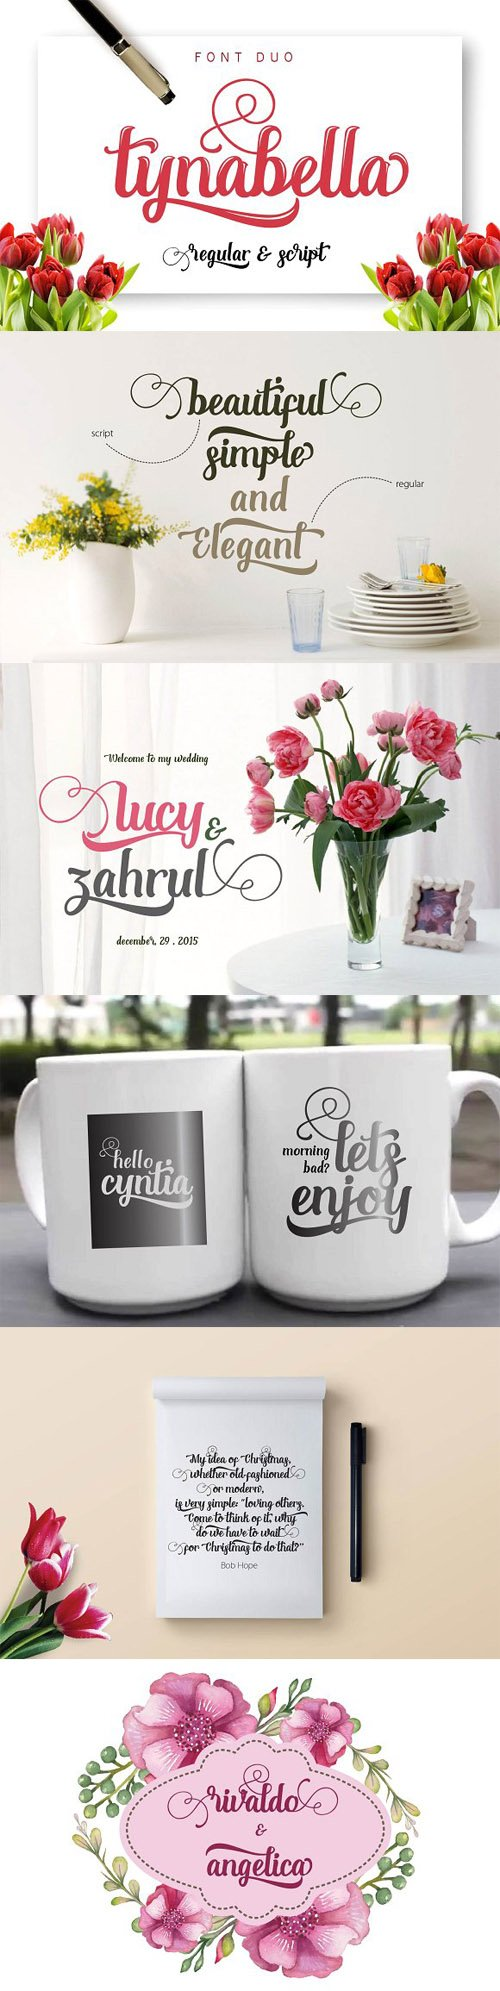 Tynabella Font Duo 458316